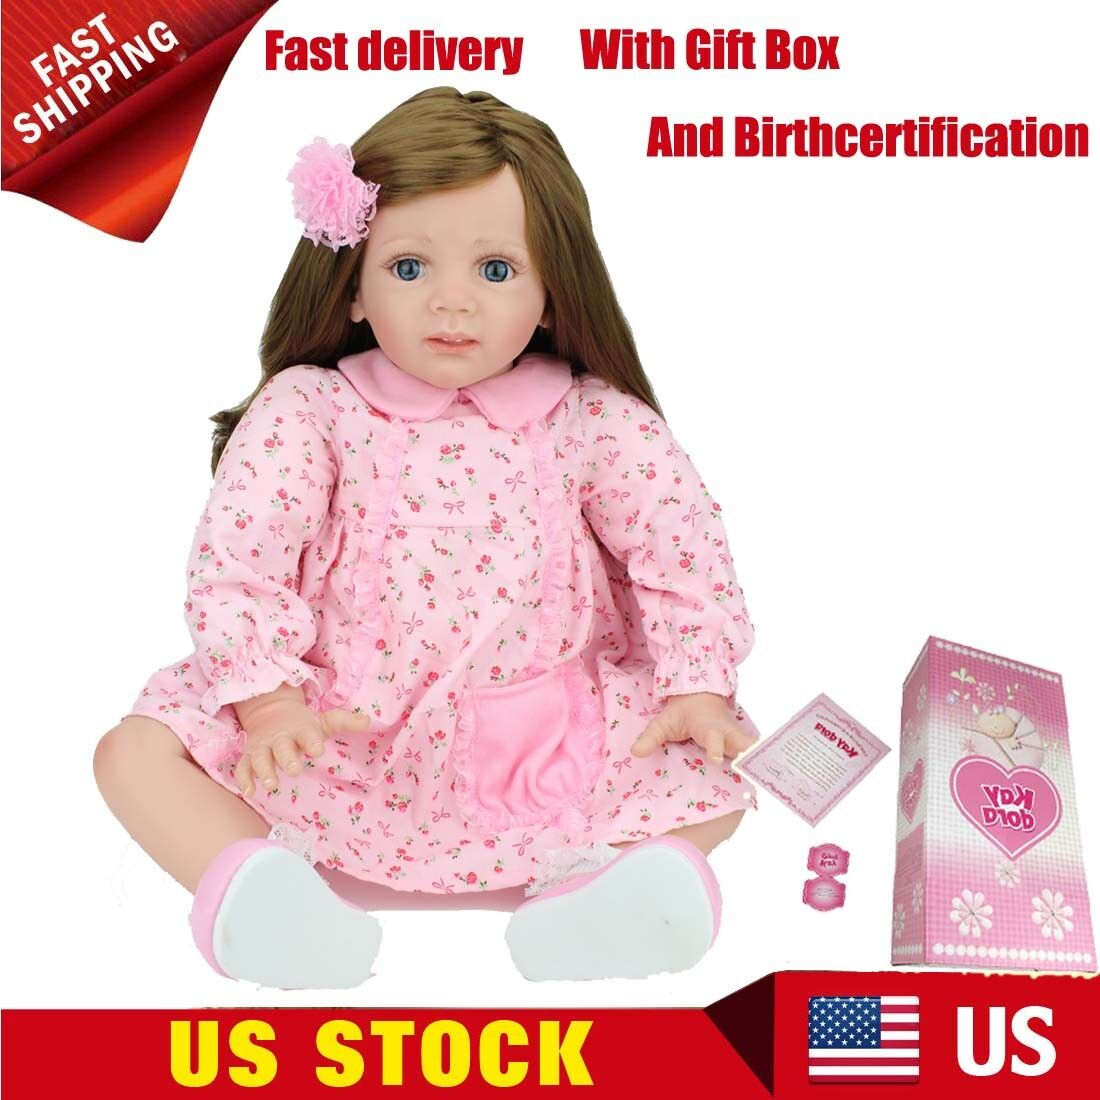 Boxed 22 inch Toddler Reborn Baby Dolls Handmade Vinyl Silicone Doll Xmas Gifts